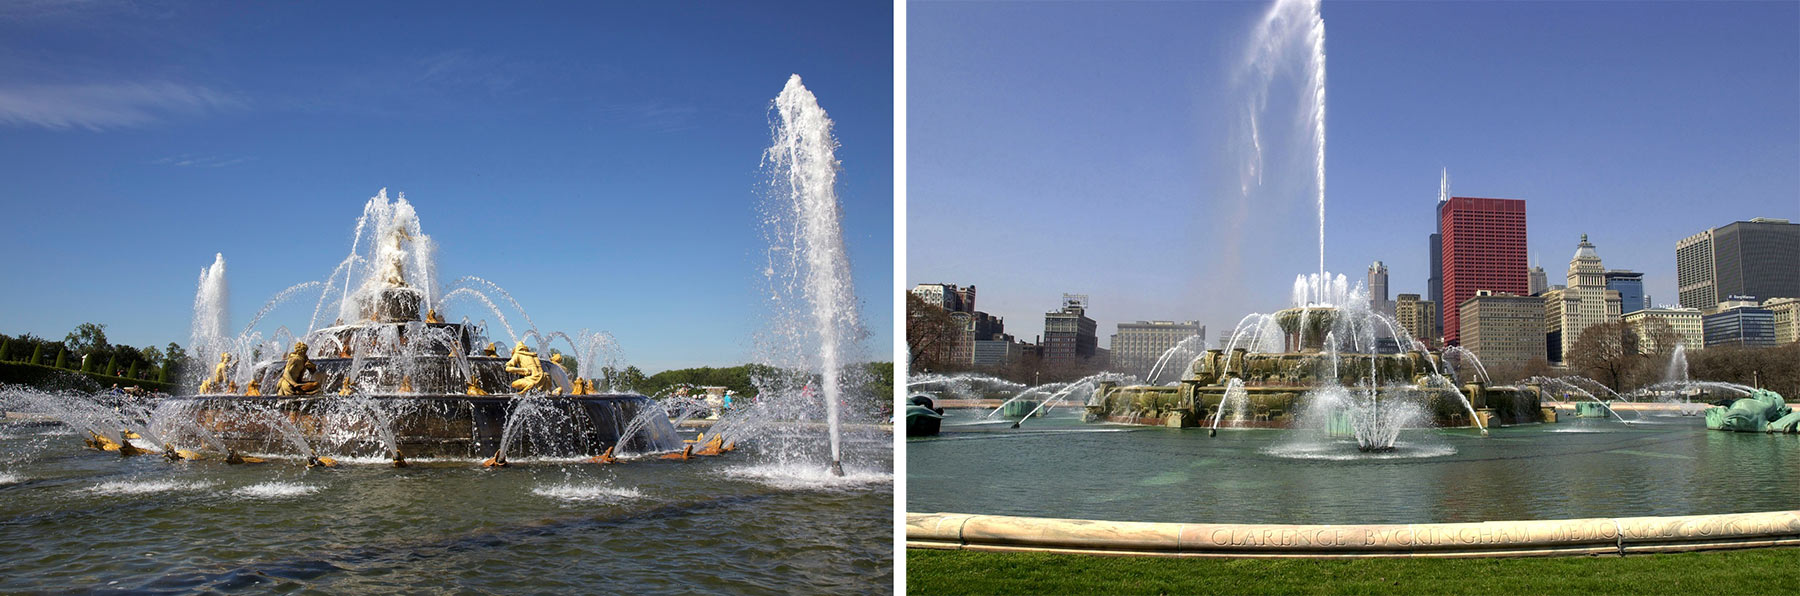 Left: Latona Basin, Gardens of Versailles, Courtesy of Wikimedia. Right: Clarence Buckingham Memorial Fountain, Photo by Julia Bachrach.